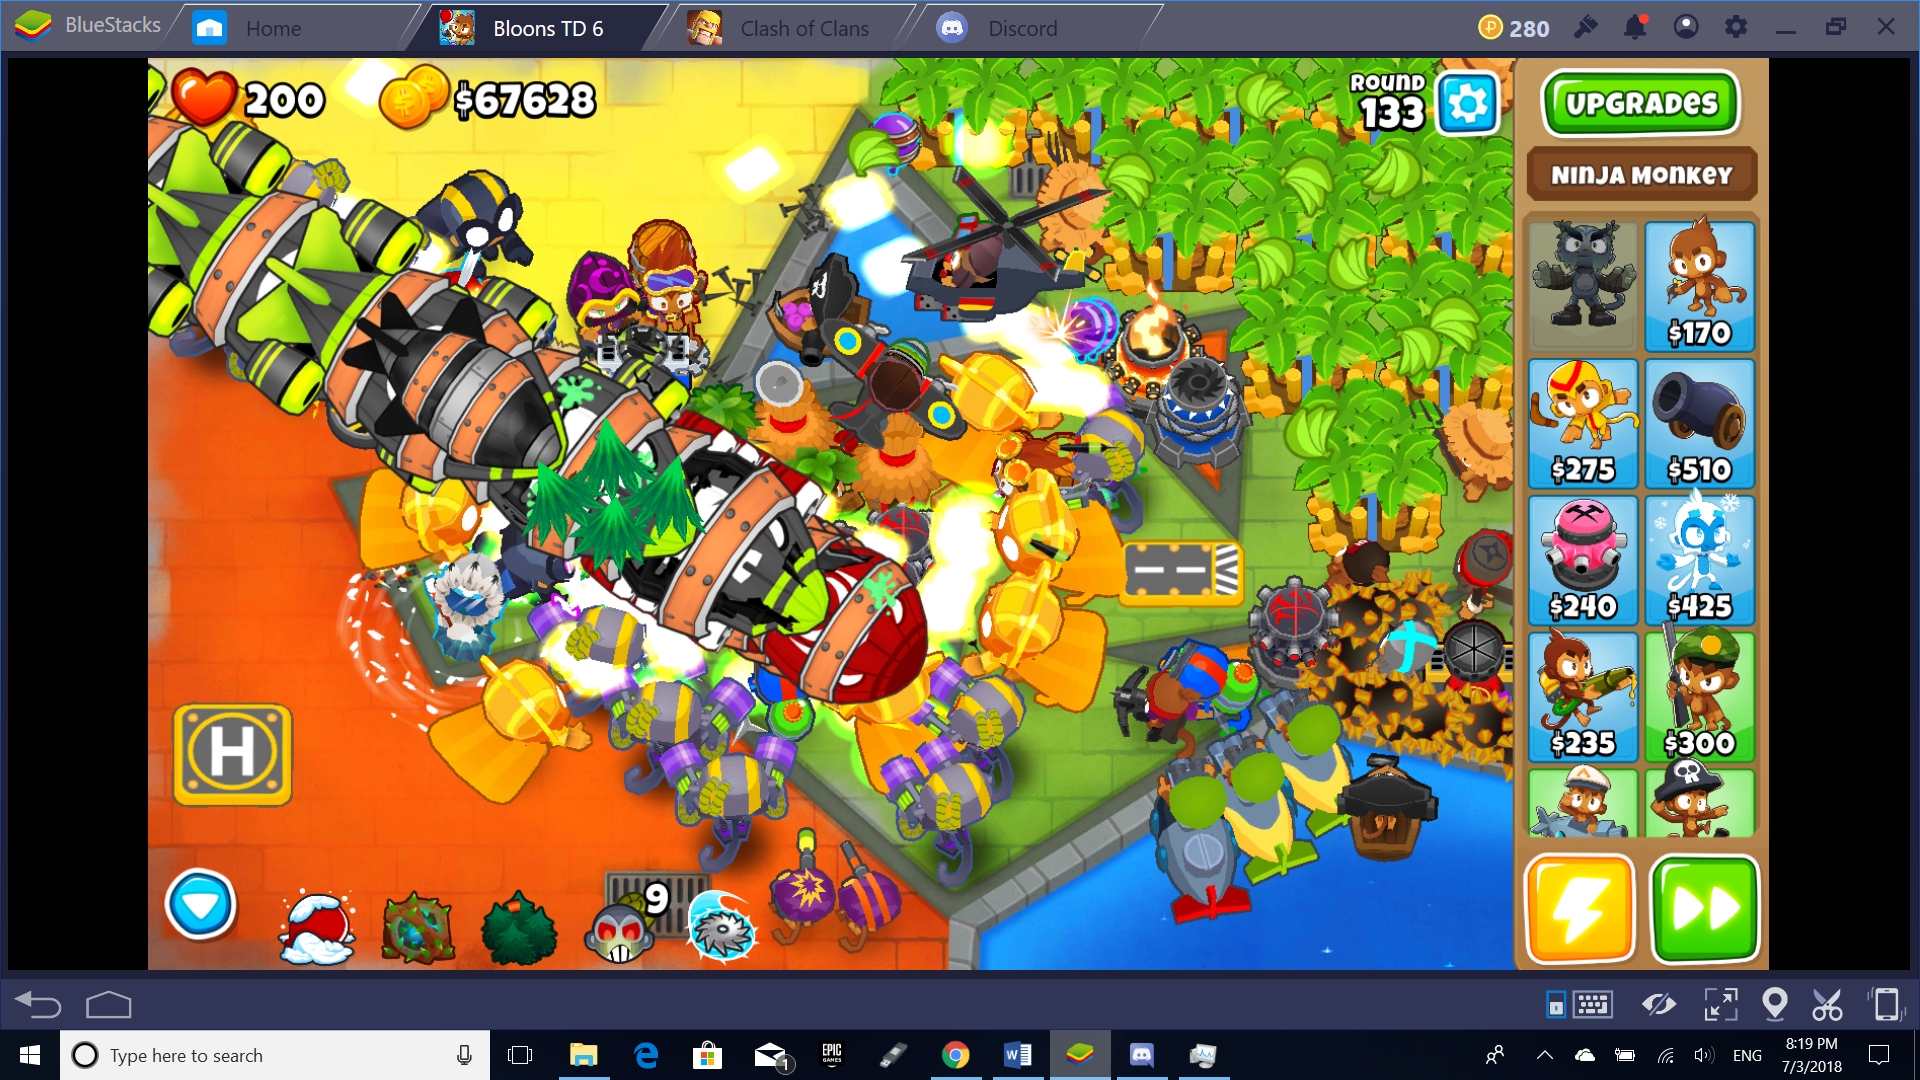 User blog:LittleWhole/Tutorial: How to play BTD6 on a PC! | Bloons